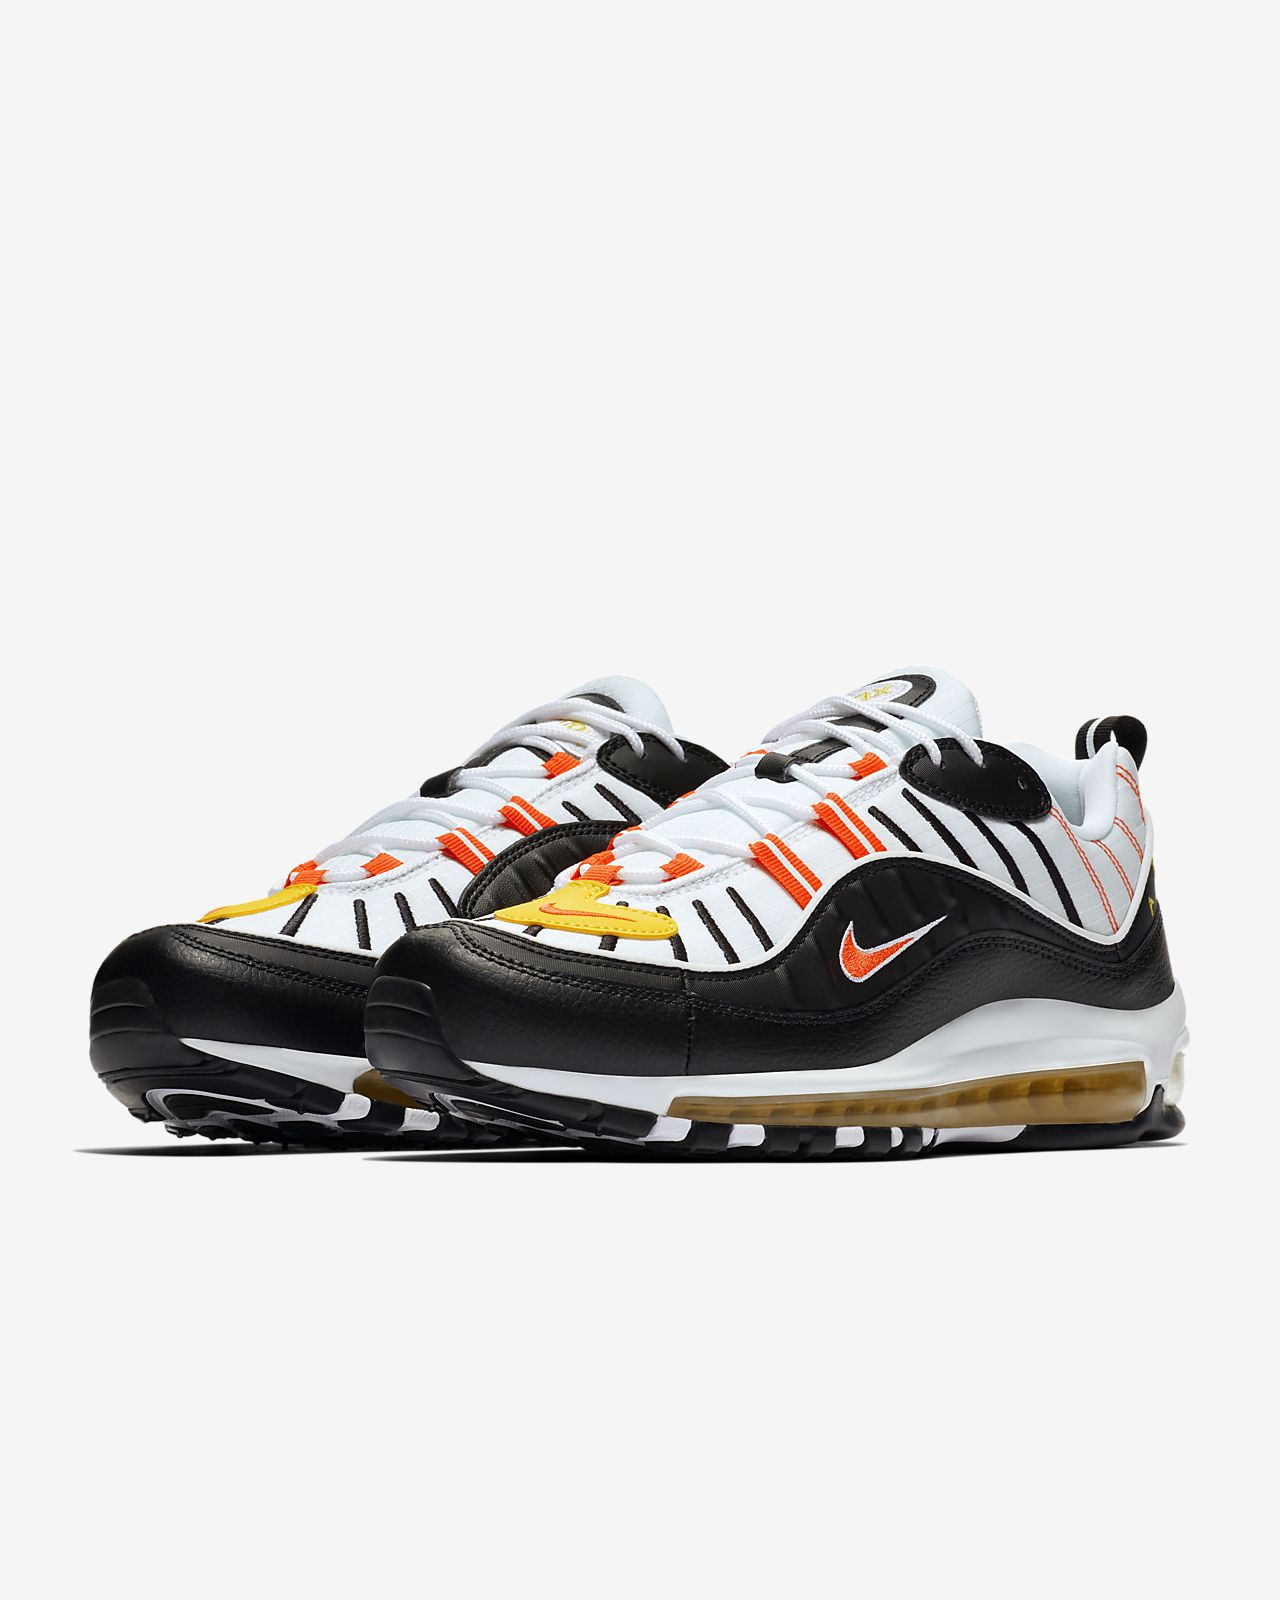 Purchase > nike 98 prix, Up to 67% OFF